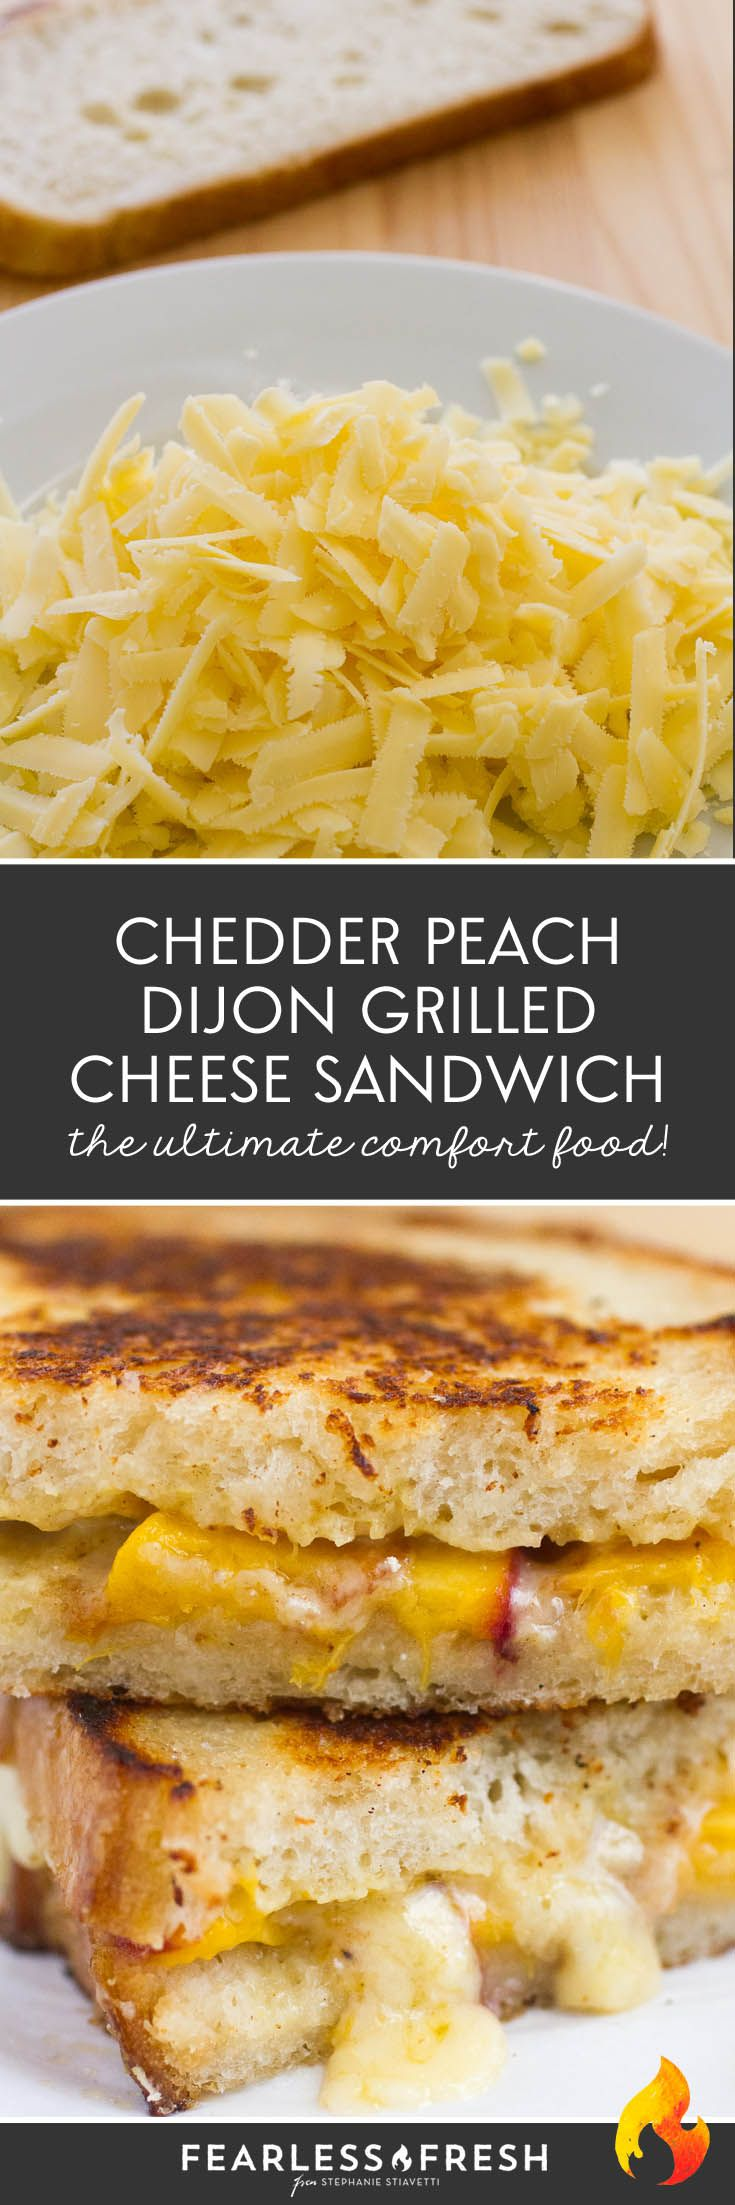 Gourmet Grilled Cheese Sandwich with Cabot Clothbound Cheddar, Peaches, and Dijon Mustard on Sourdough Bread on https://fearlessfresh.com/peach-dijon-cheddar-grilled-cheese-sandwich/